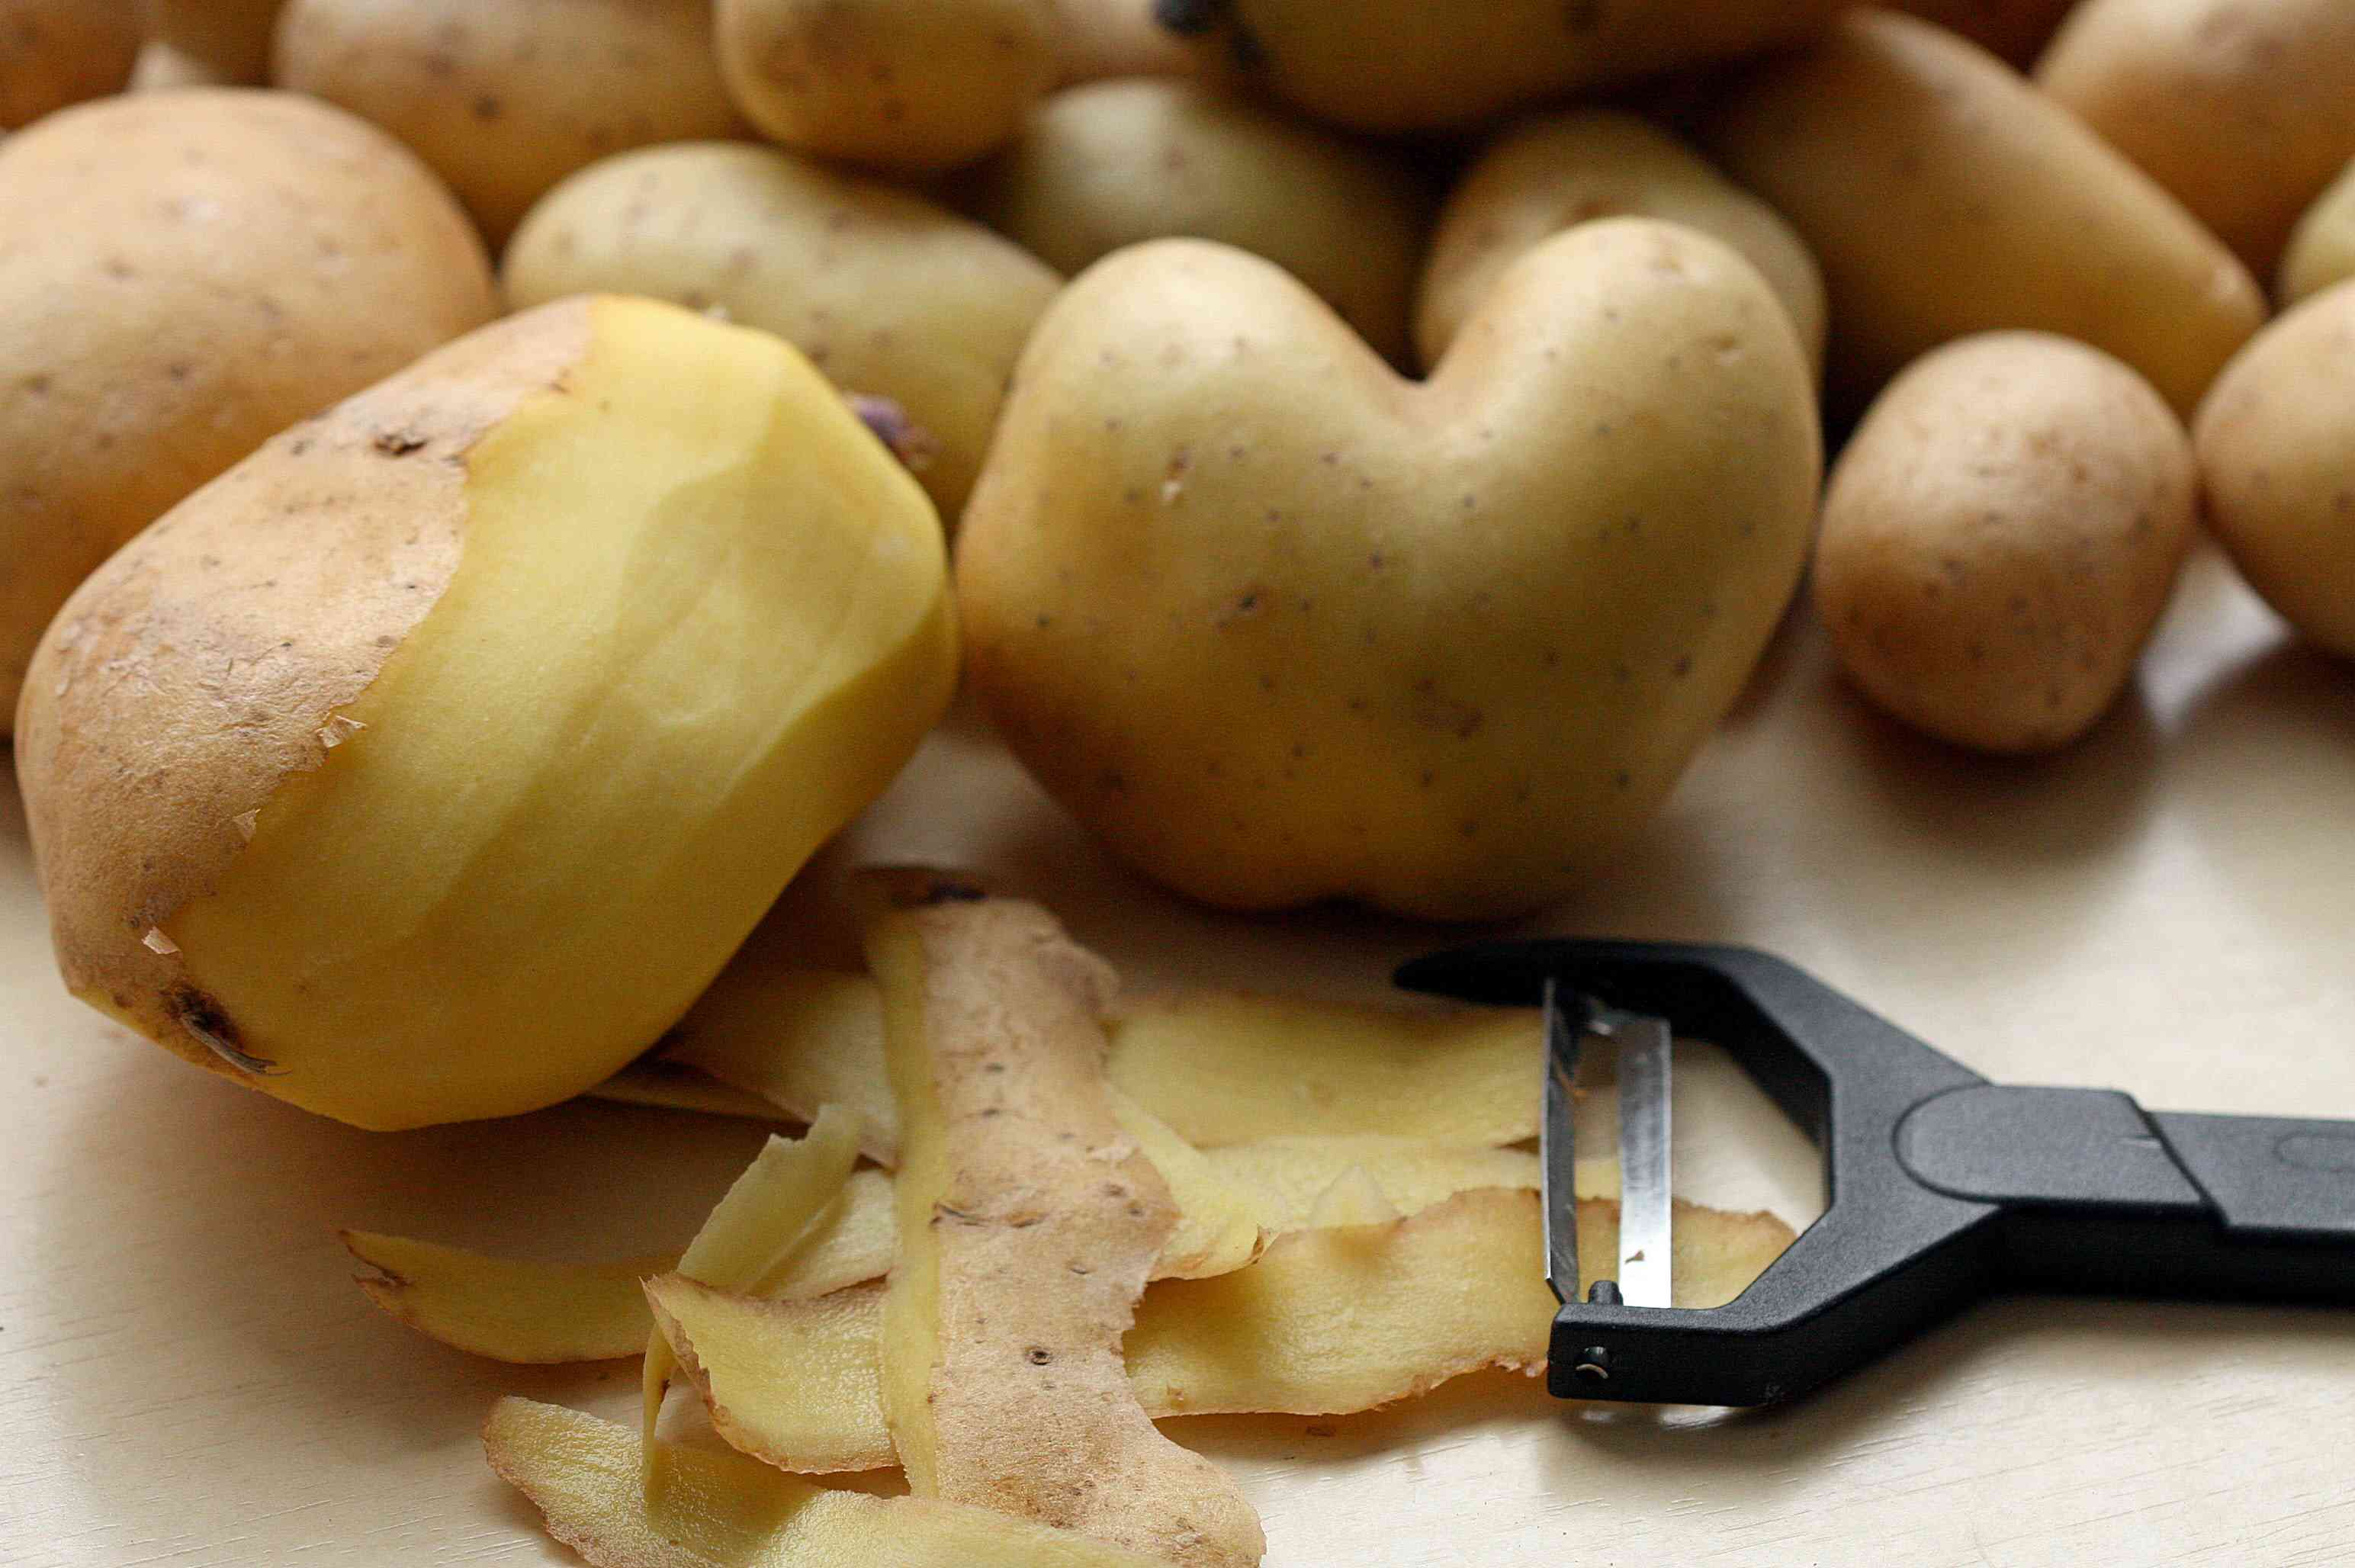 A pile of potatoes, one partially peeled, next to a peeler.